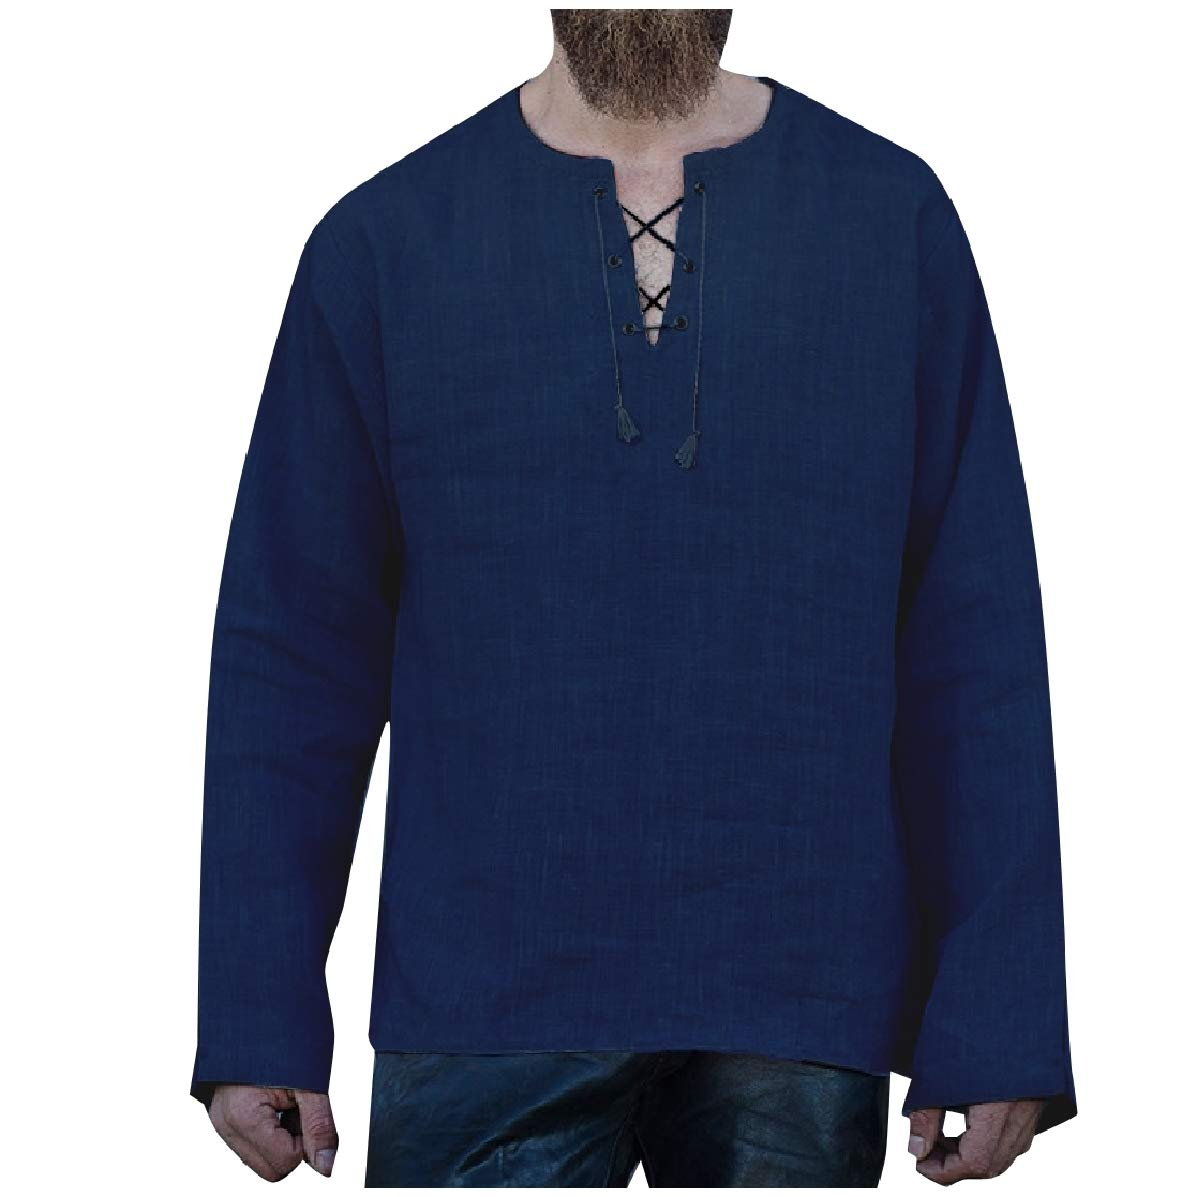 YUNY Men V Neck Ethnic Style Loose Solid-Colored Relaxed Tees Top Navy Blue S